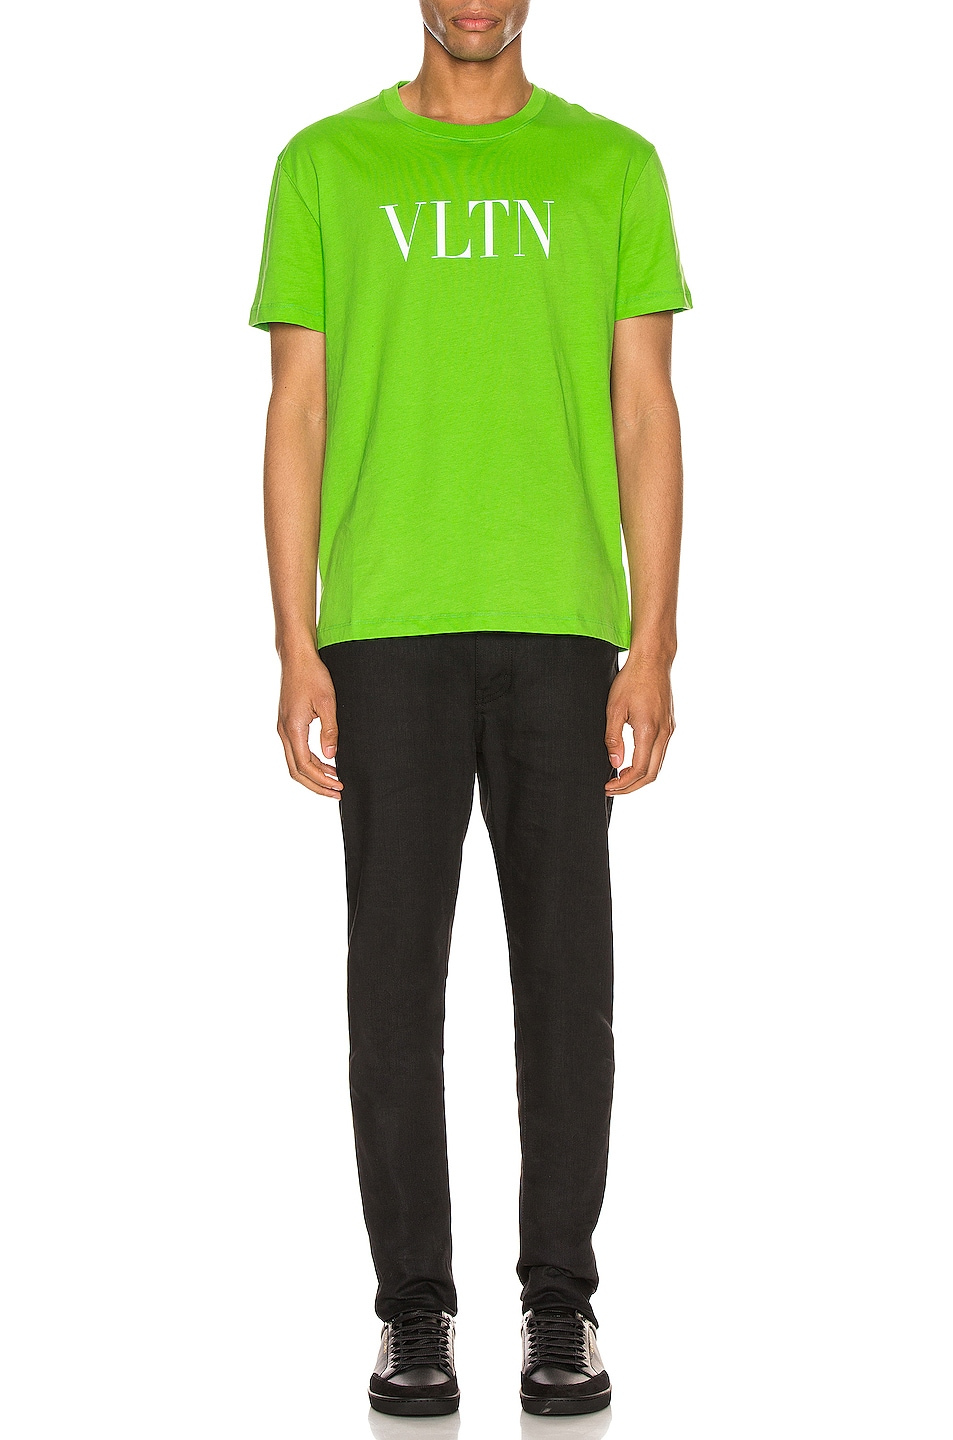 Image 4 of Valentino VLTN Tee in Fluo Green